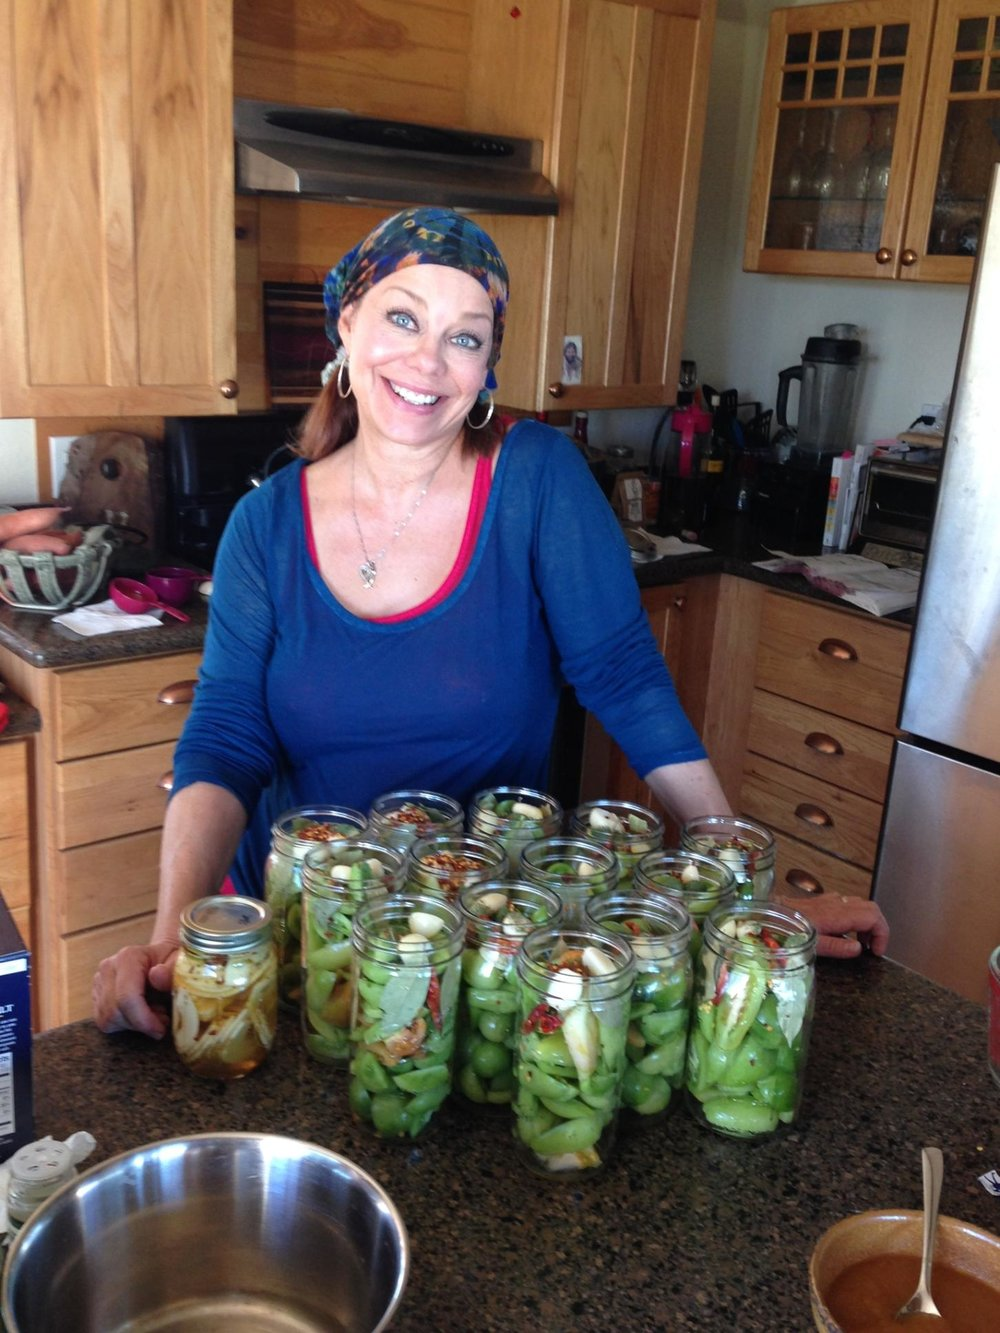 Hi! I'm Heidi, and I'm so glad you're here! I'm the author of this small part of the inter webs, Healing Harvest Homestead, where I help people become more self-reliant, healthy, and naturally happy...  READ MORE